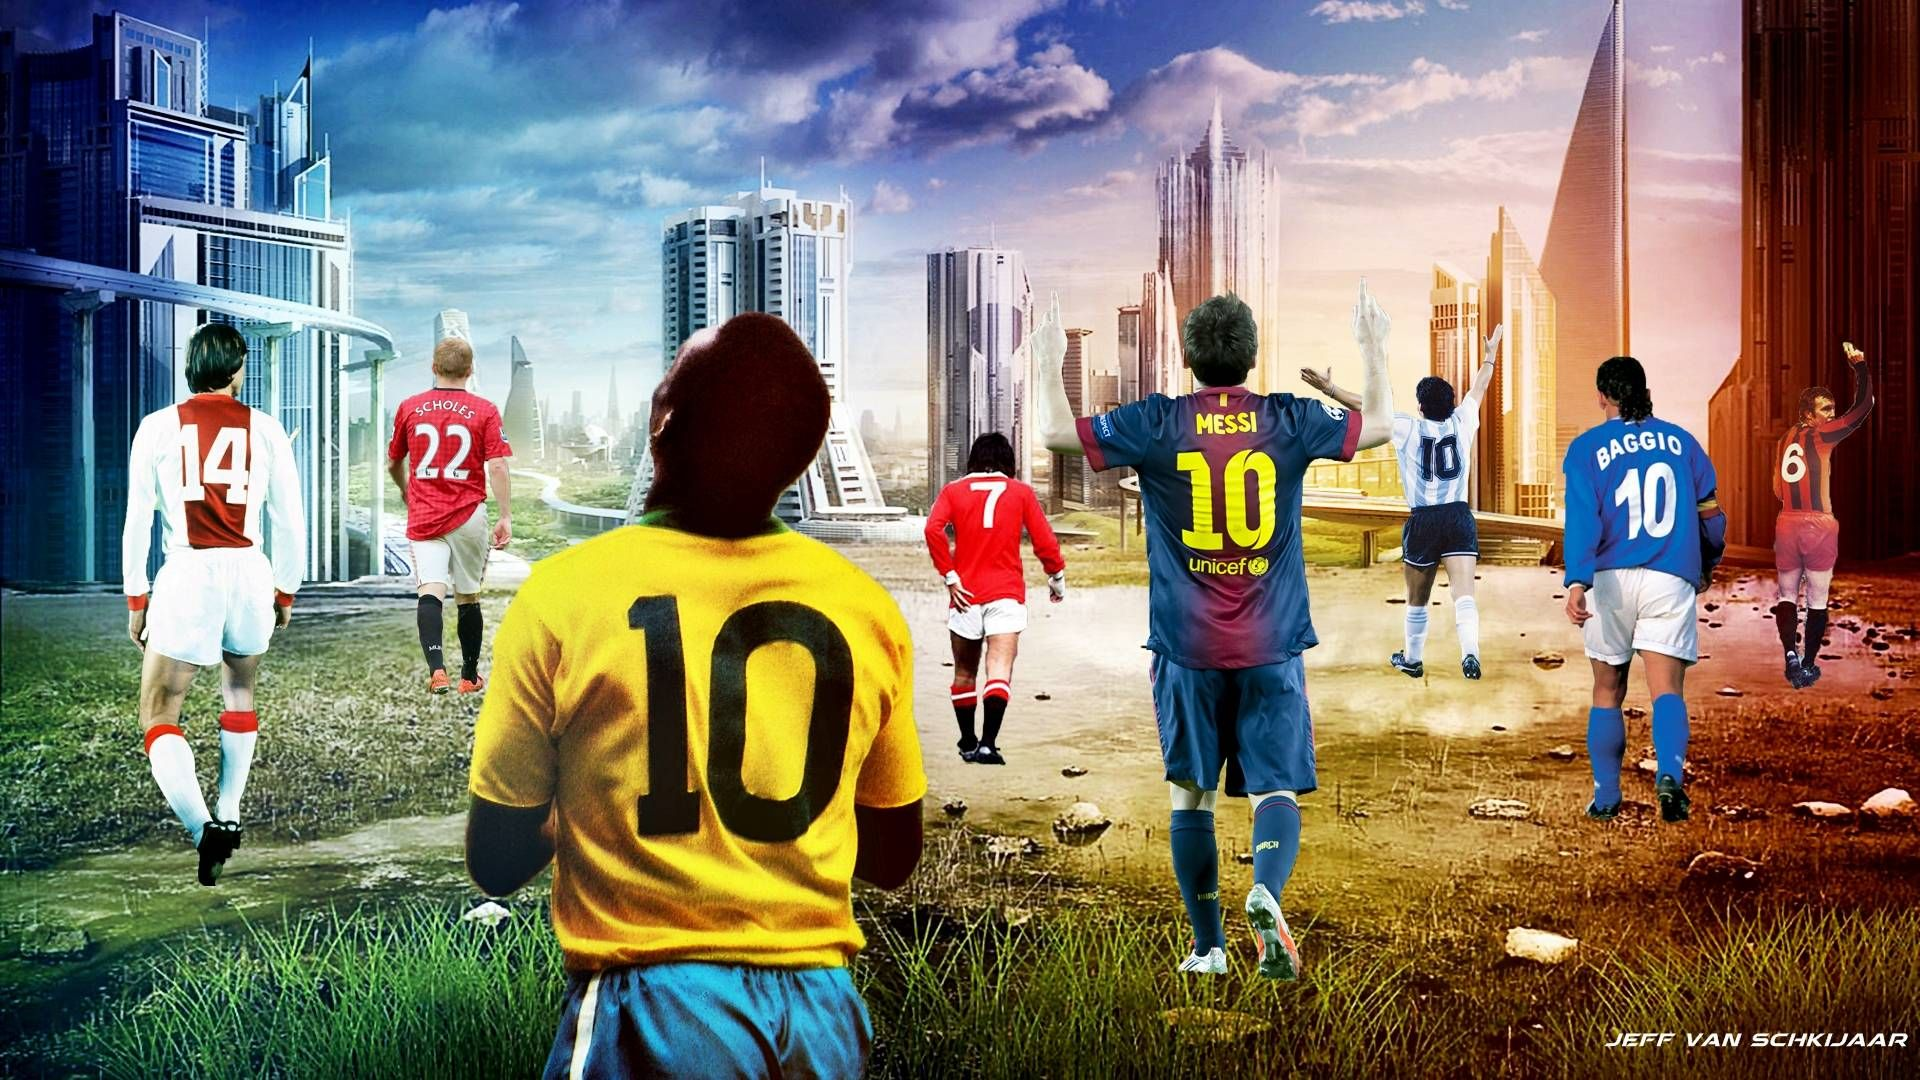 Best Hd Football Wallpaper Android Central 1920 1200 Cool Football Wallpapers 67 Wallpapers Ado Football Wallpaper Best Football Players Sports Wallpapers